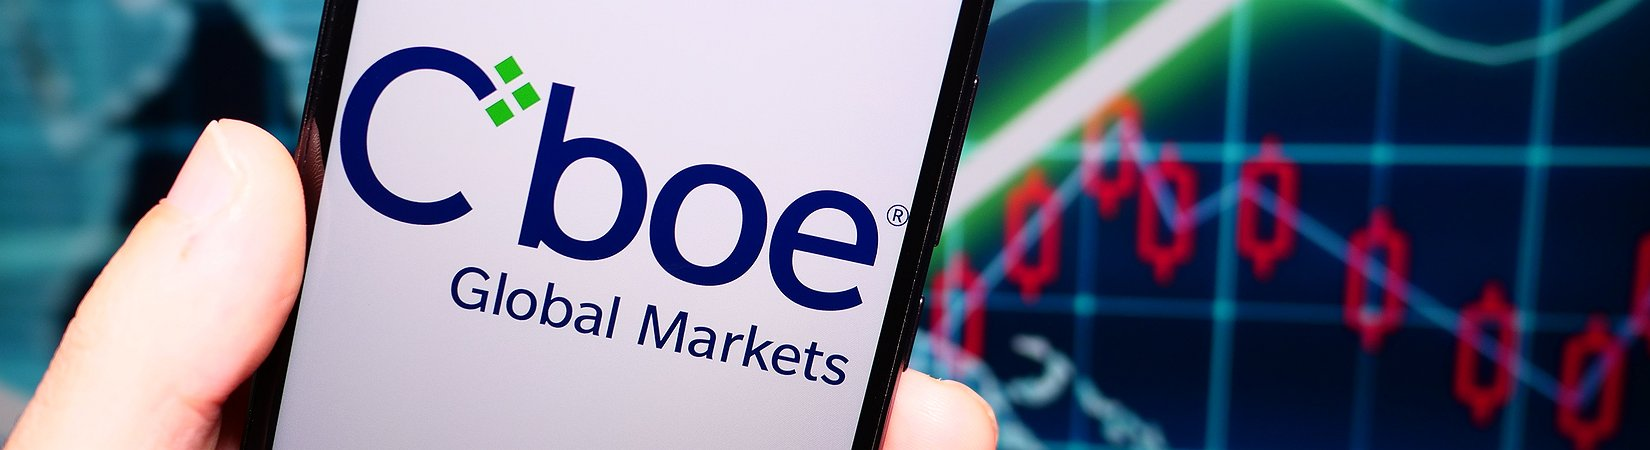 CBOE Will Not List Bitcoin Futures This Month | News | ihodl com